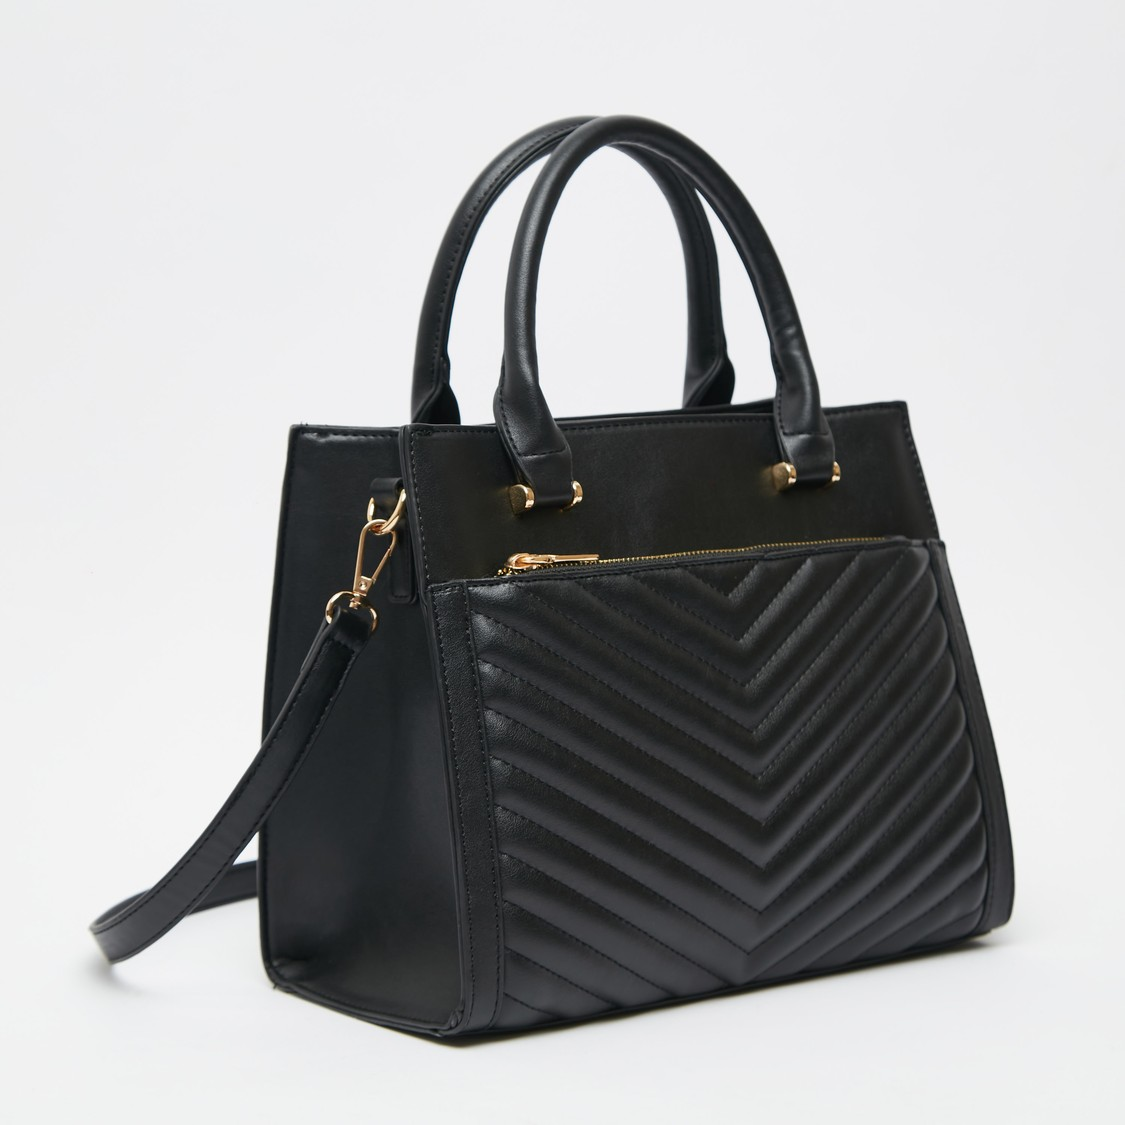 Quilted Handbag with Detachable Strap and Zip Closure